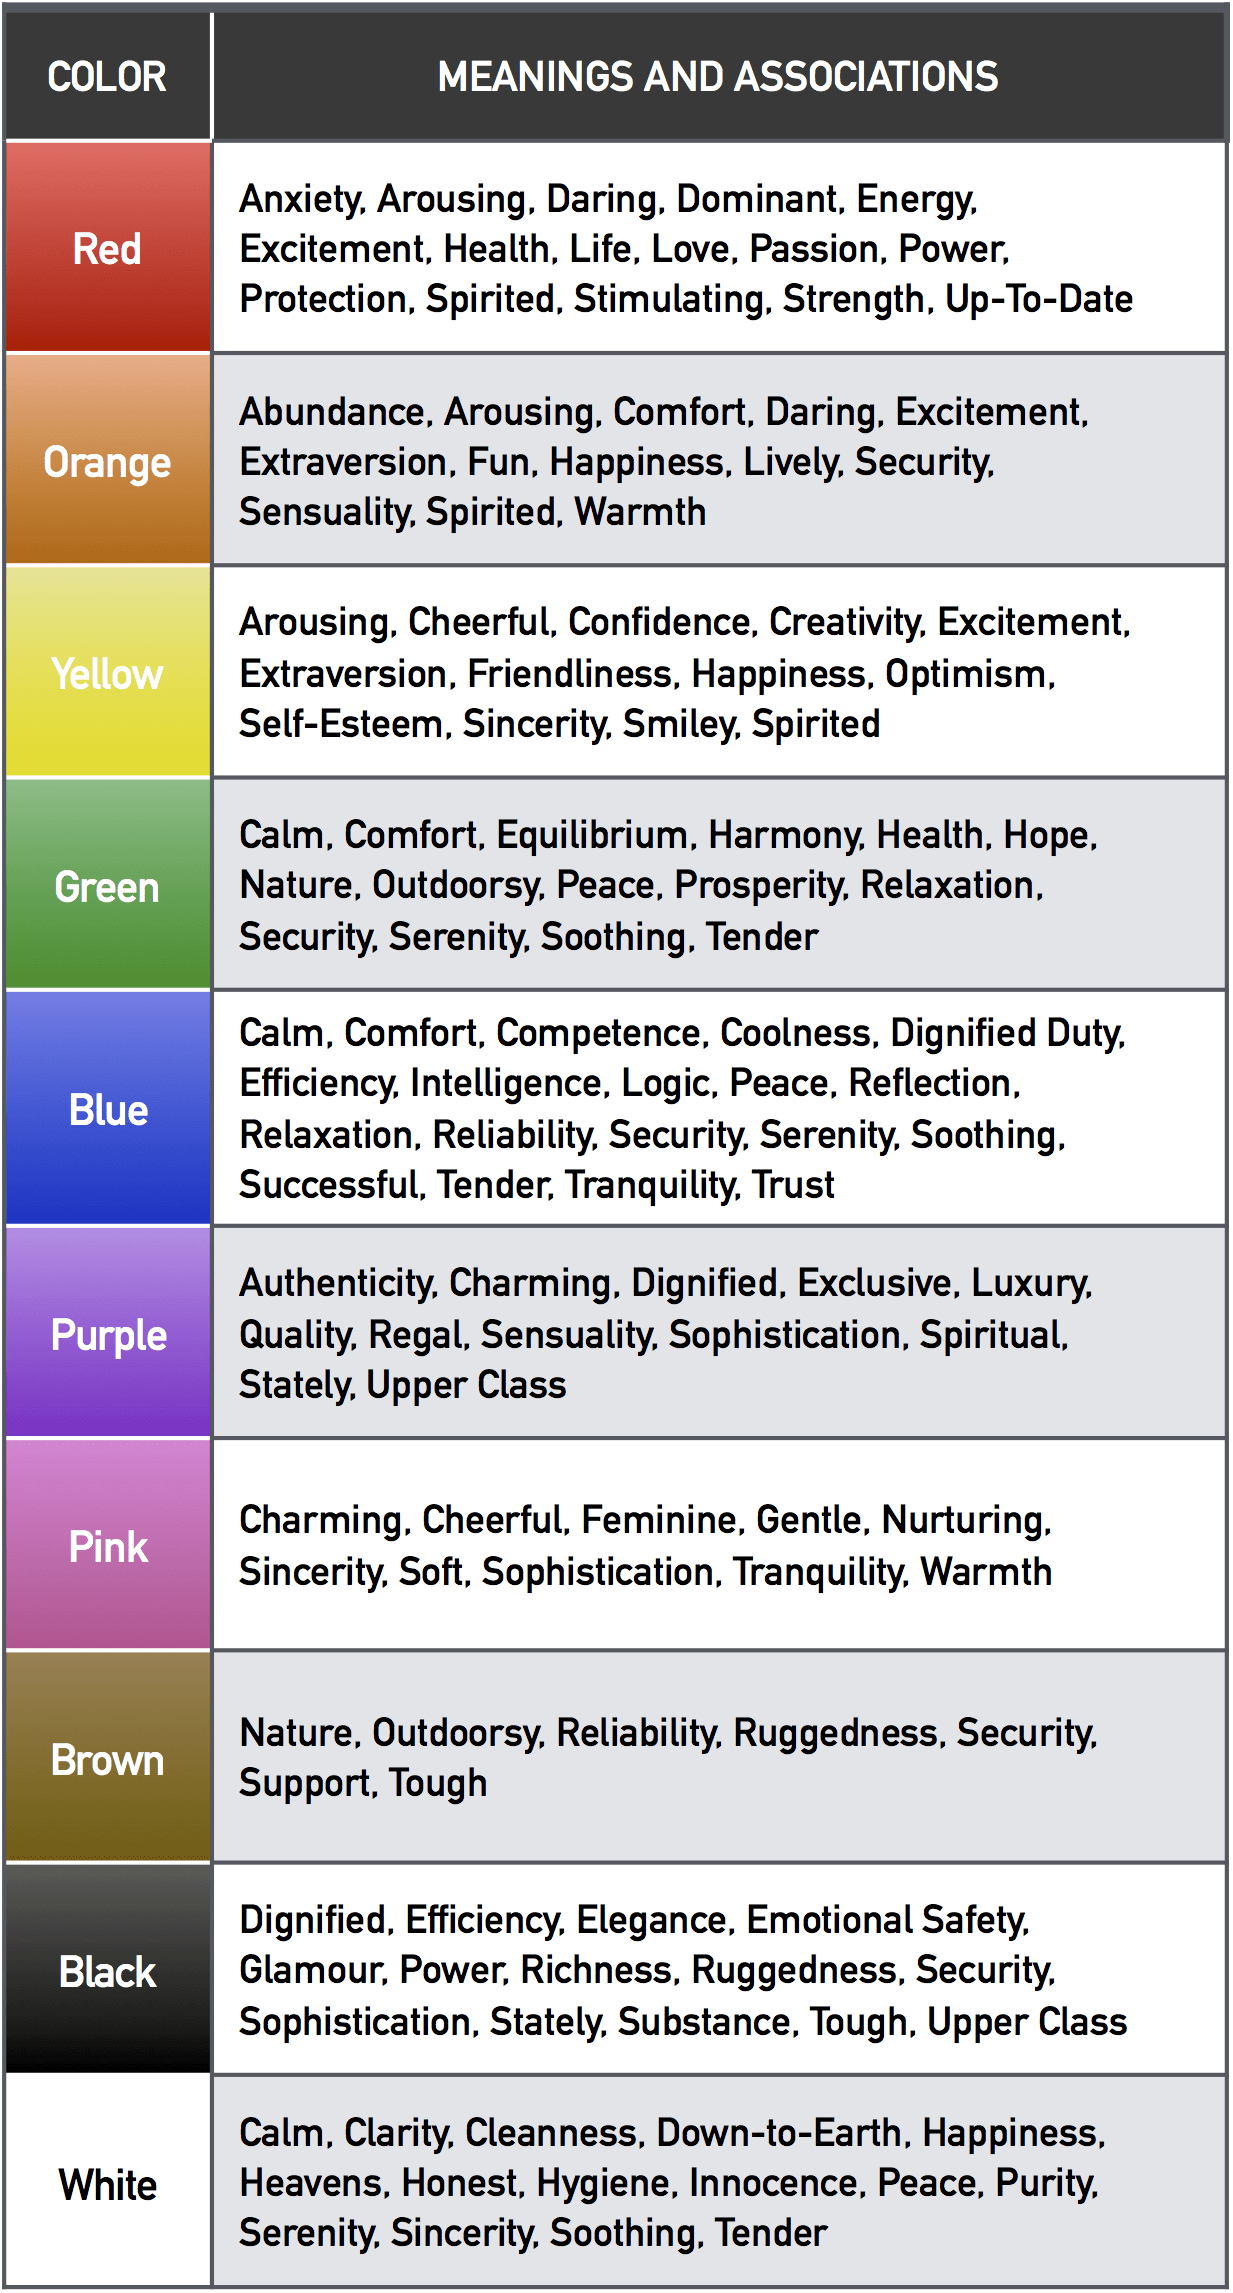 Table of Color Meanings